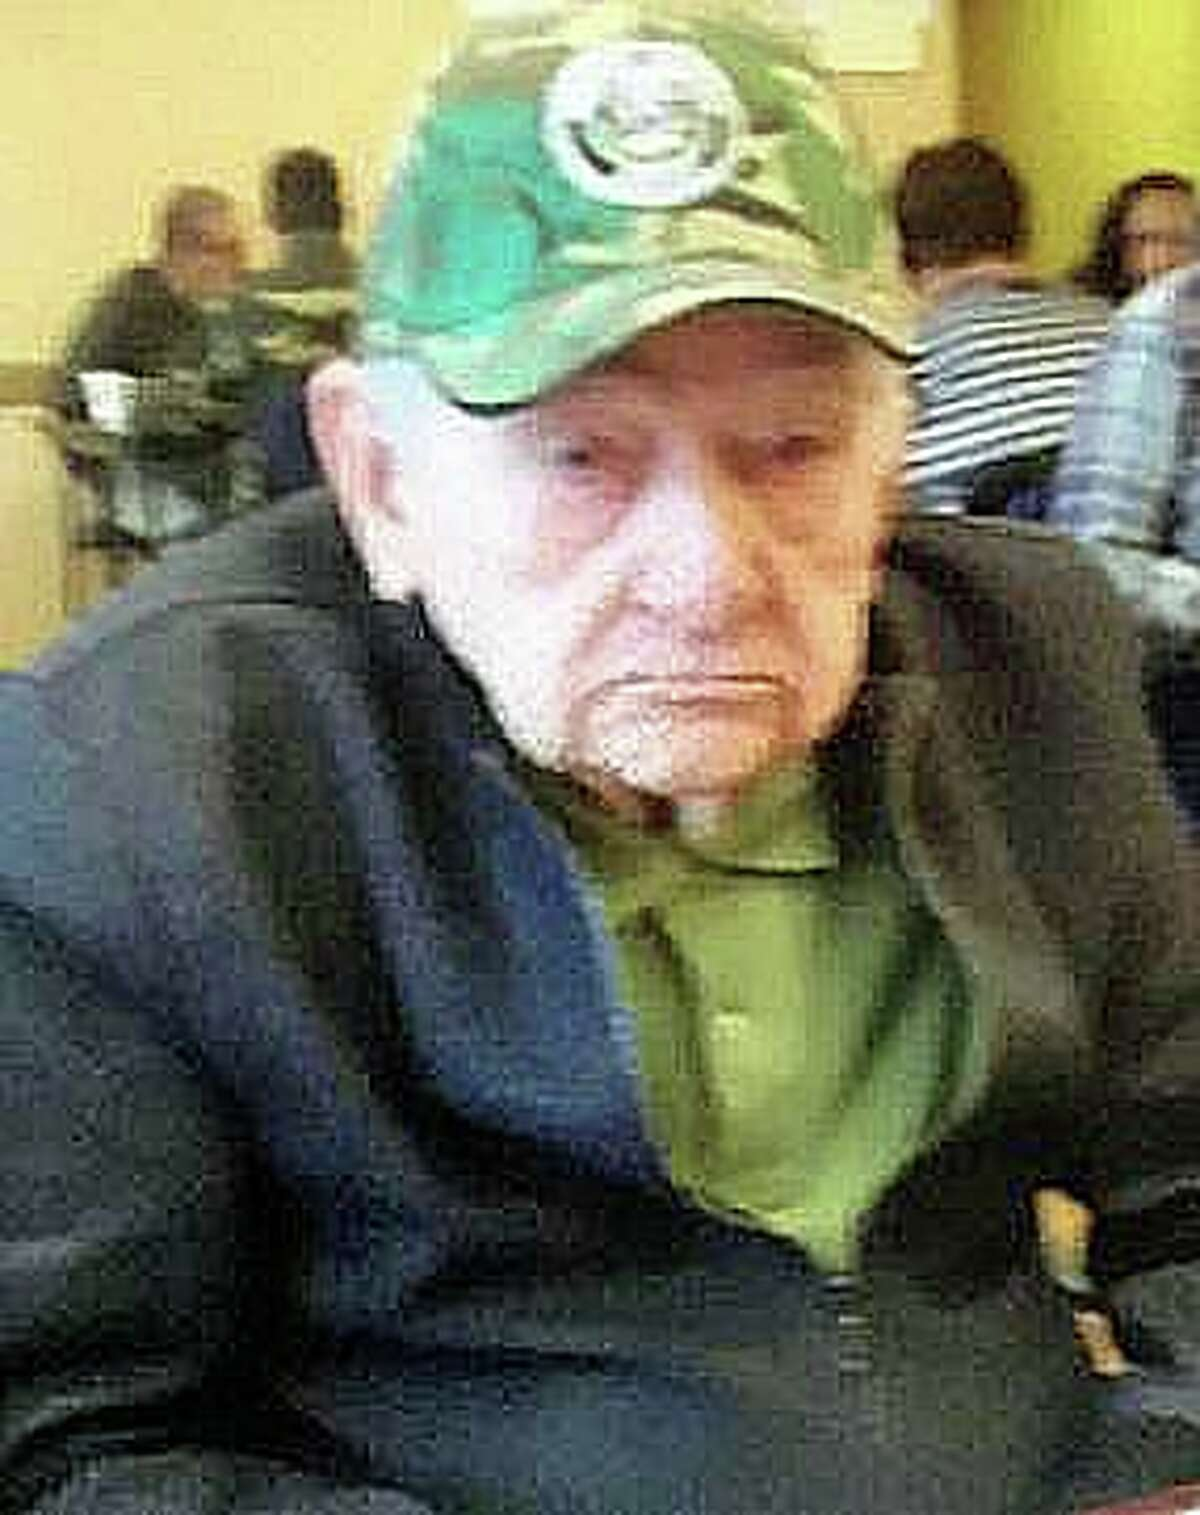 State Police have issued a Silver Alert for a missing 85-year-old man. Carlos Torres has been missing from New Haven since early Tuesday morning on Aug. 6, 2019